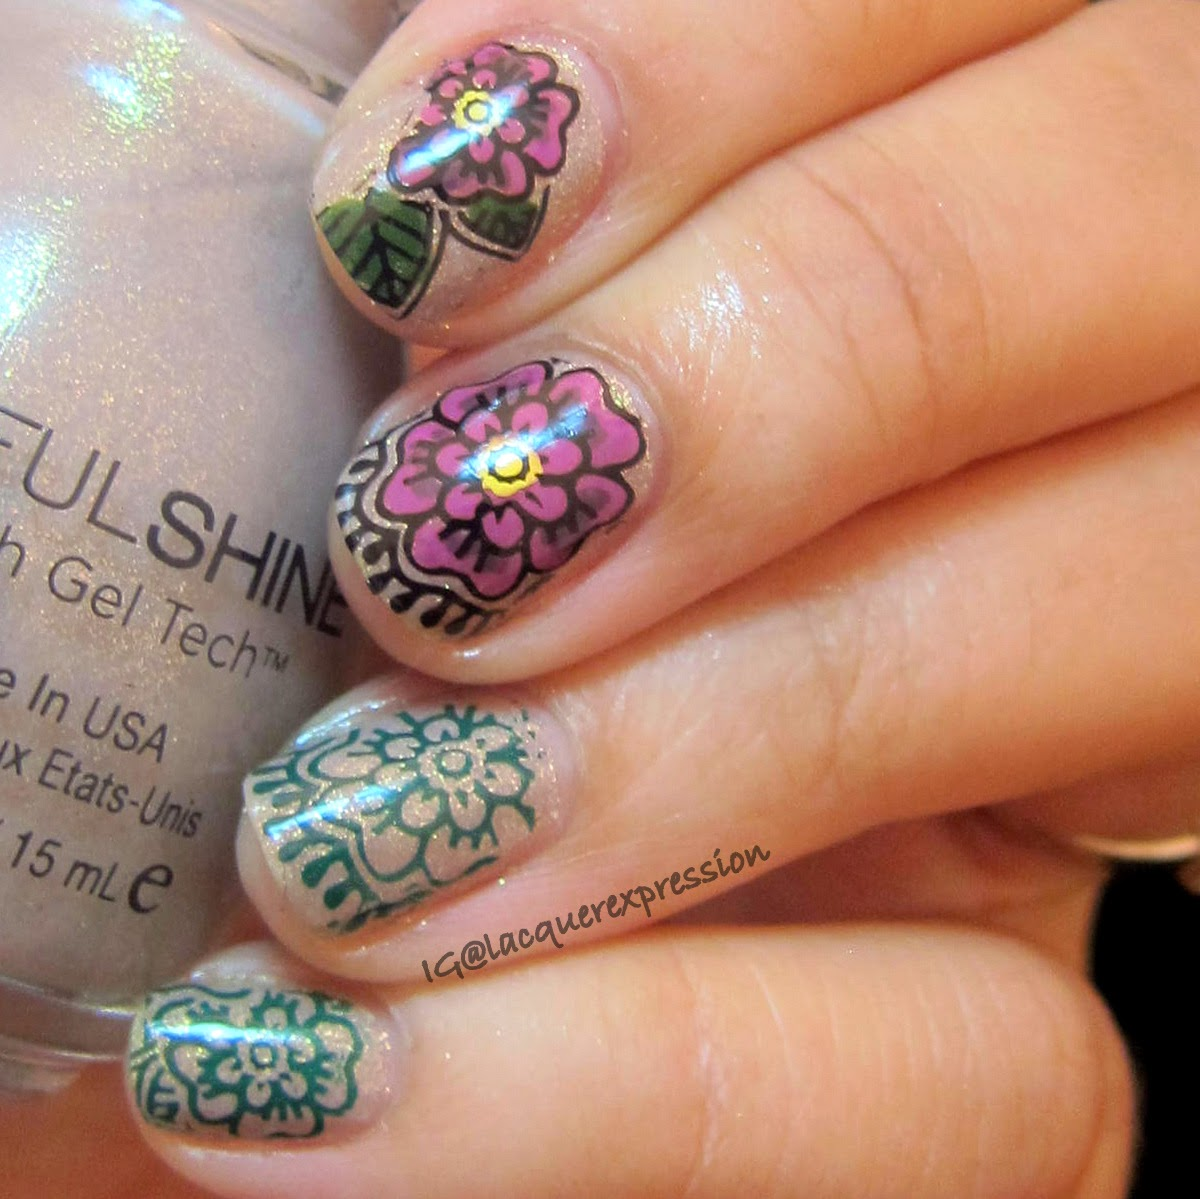 Nail stamping art with Moyou London Explorer plate 6 and Sinful Shine Prosecco